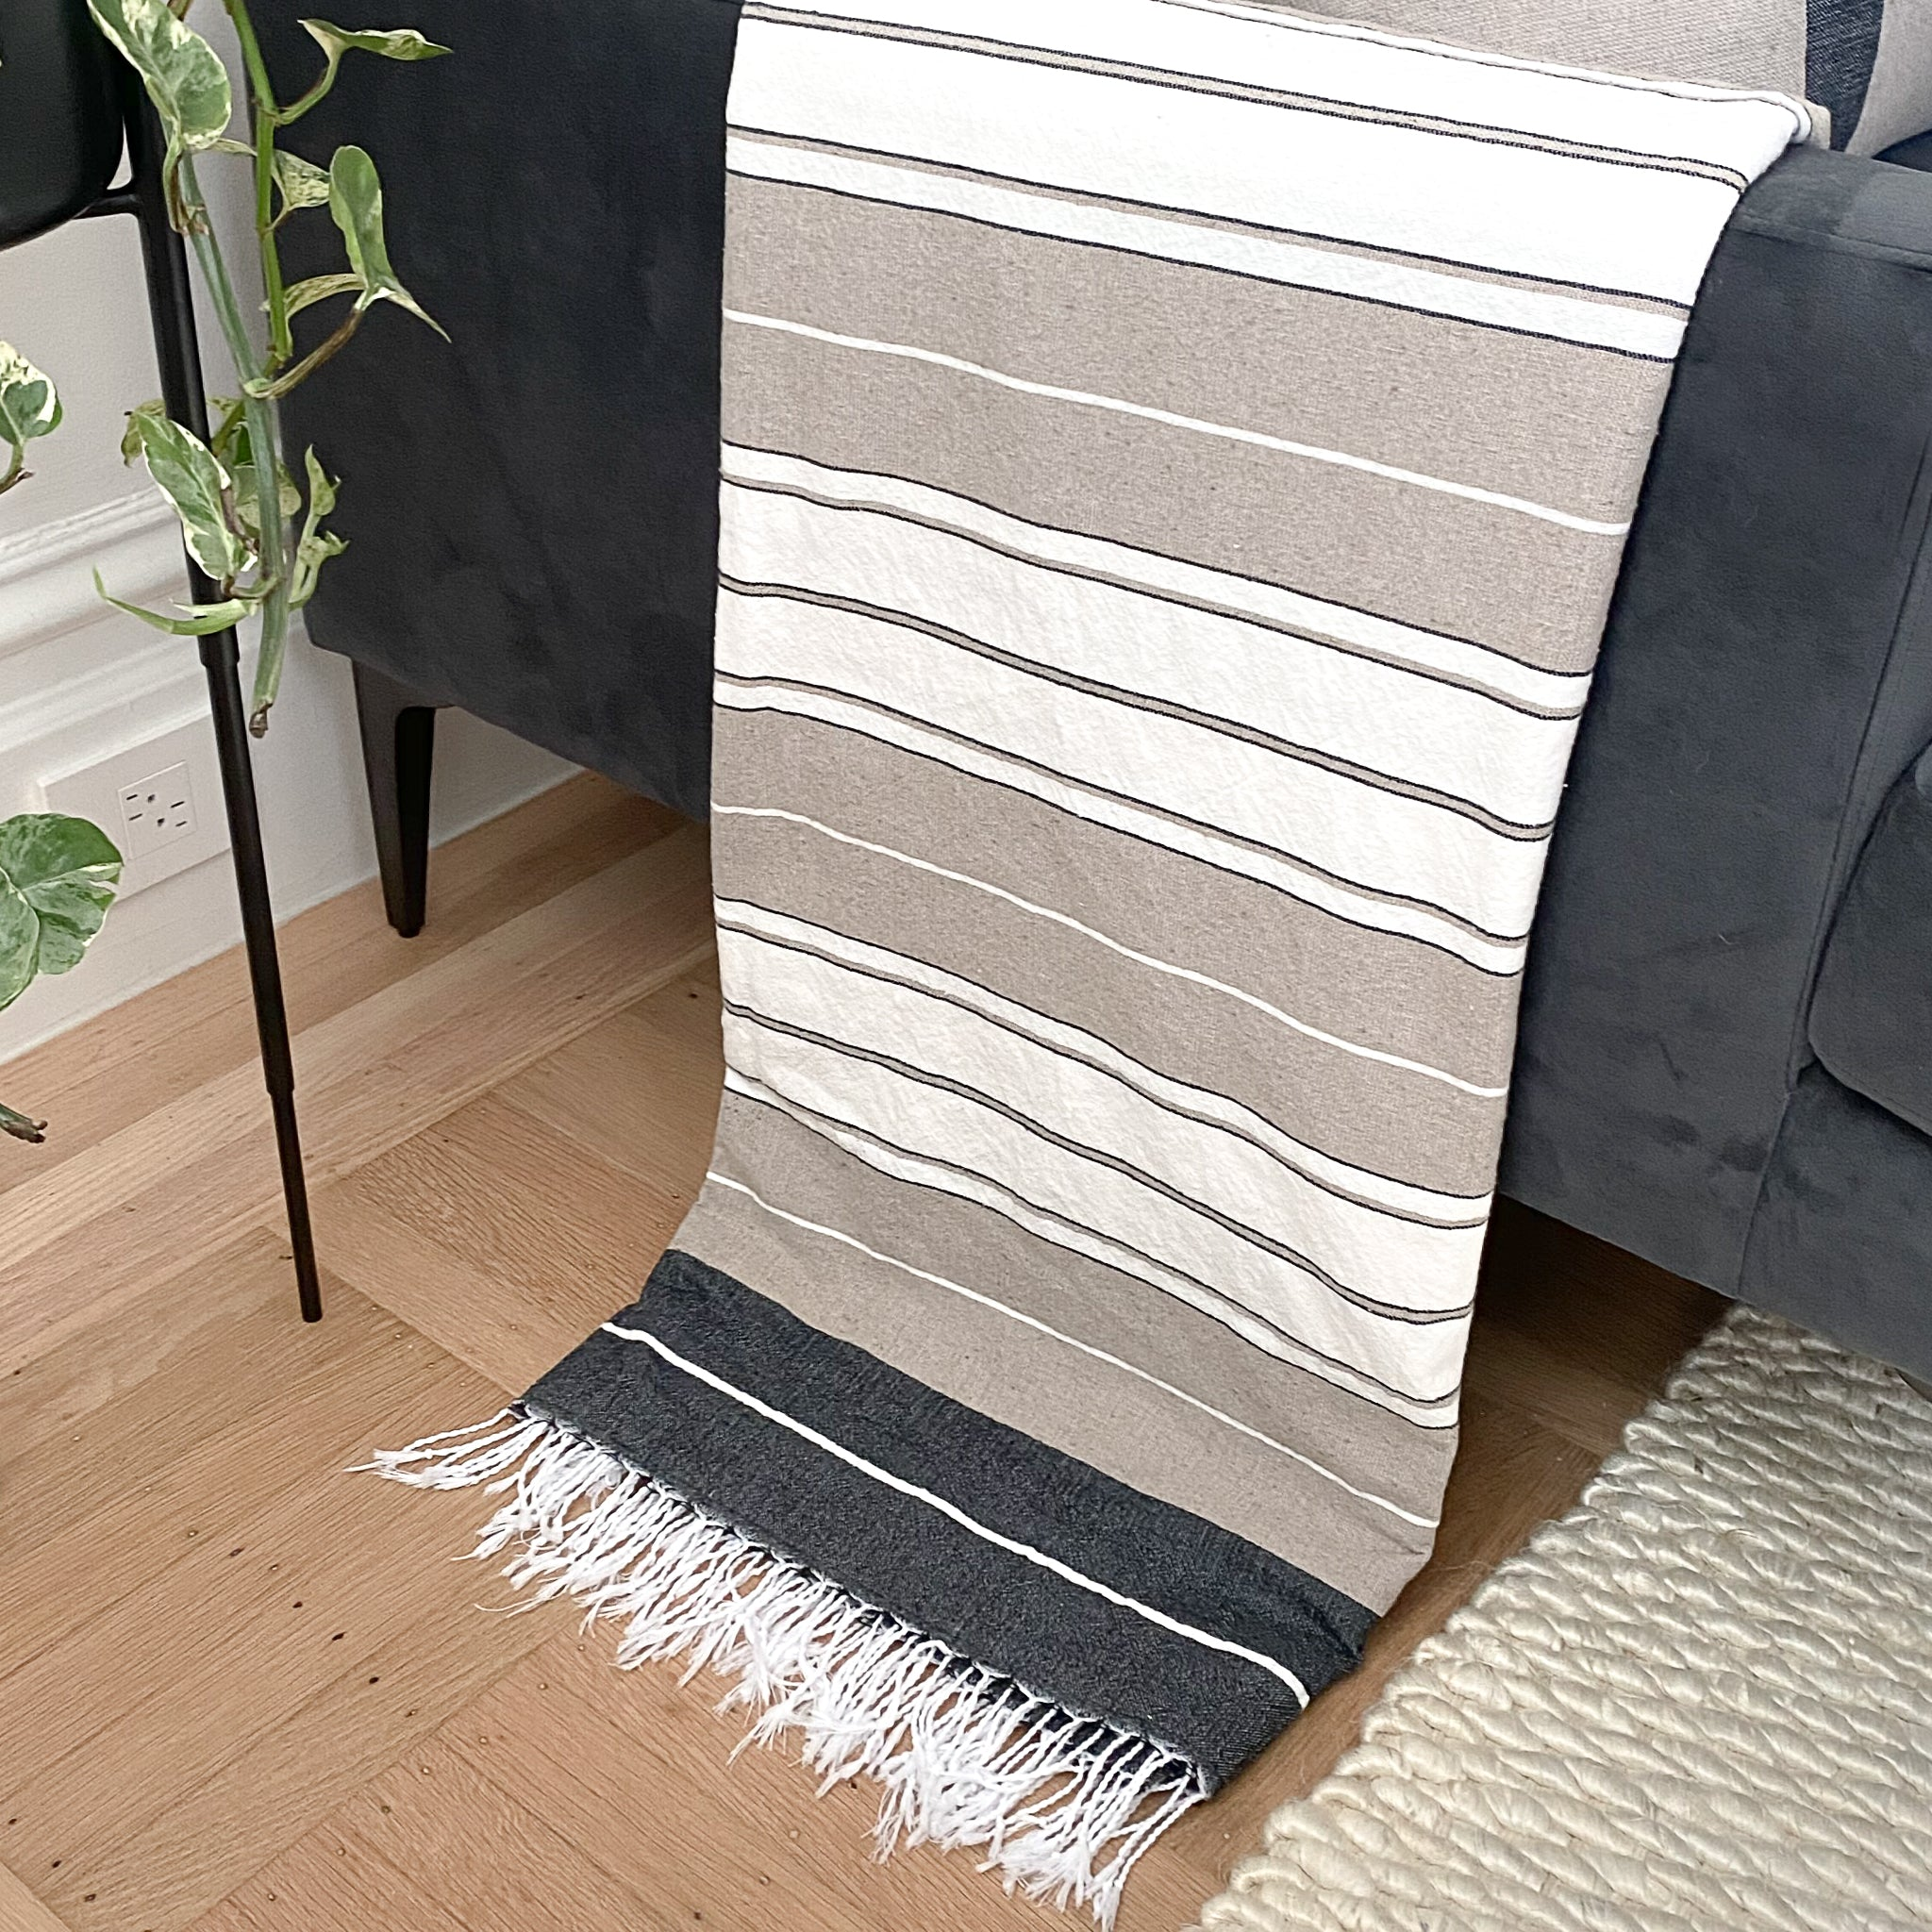 A sandy beige, white and dark grey striped cotton throw hanging over the arm of a dark grey velvet couch.